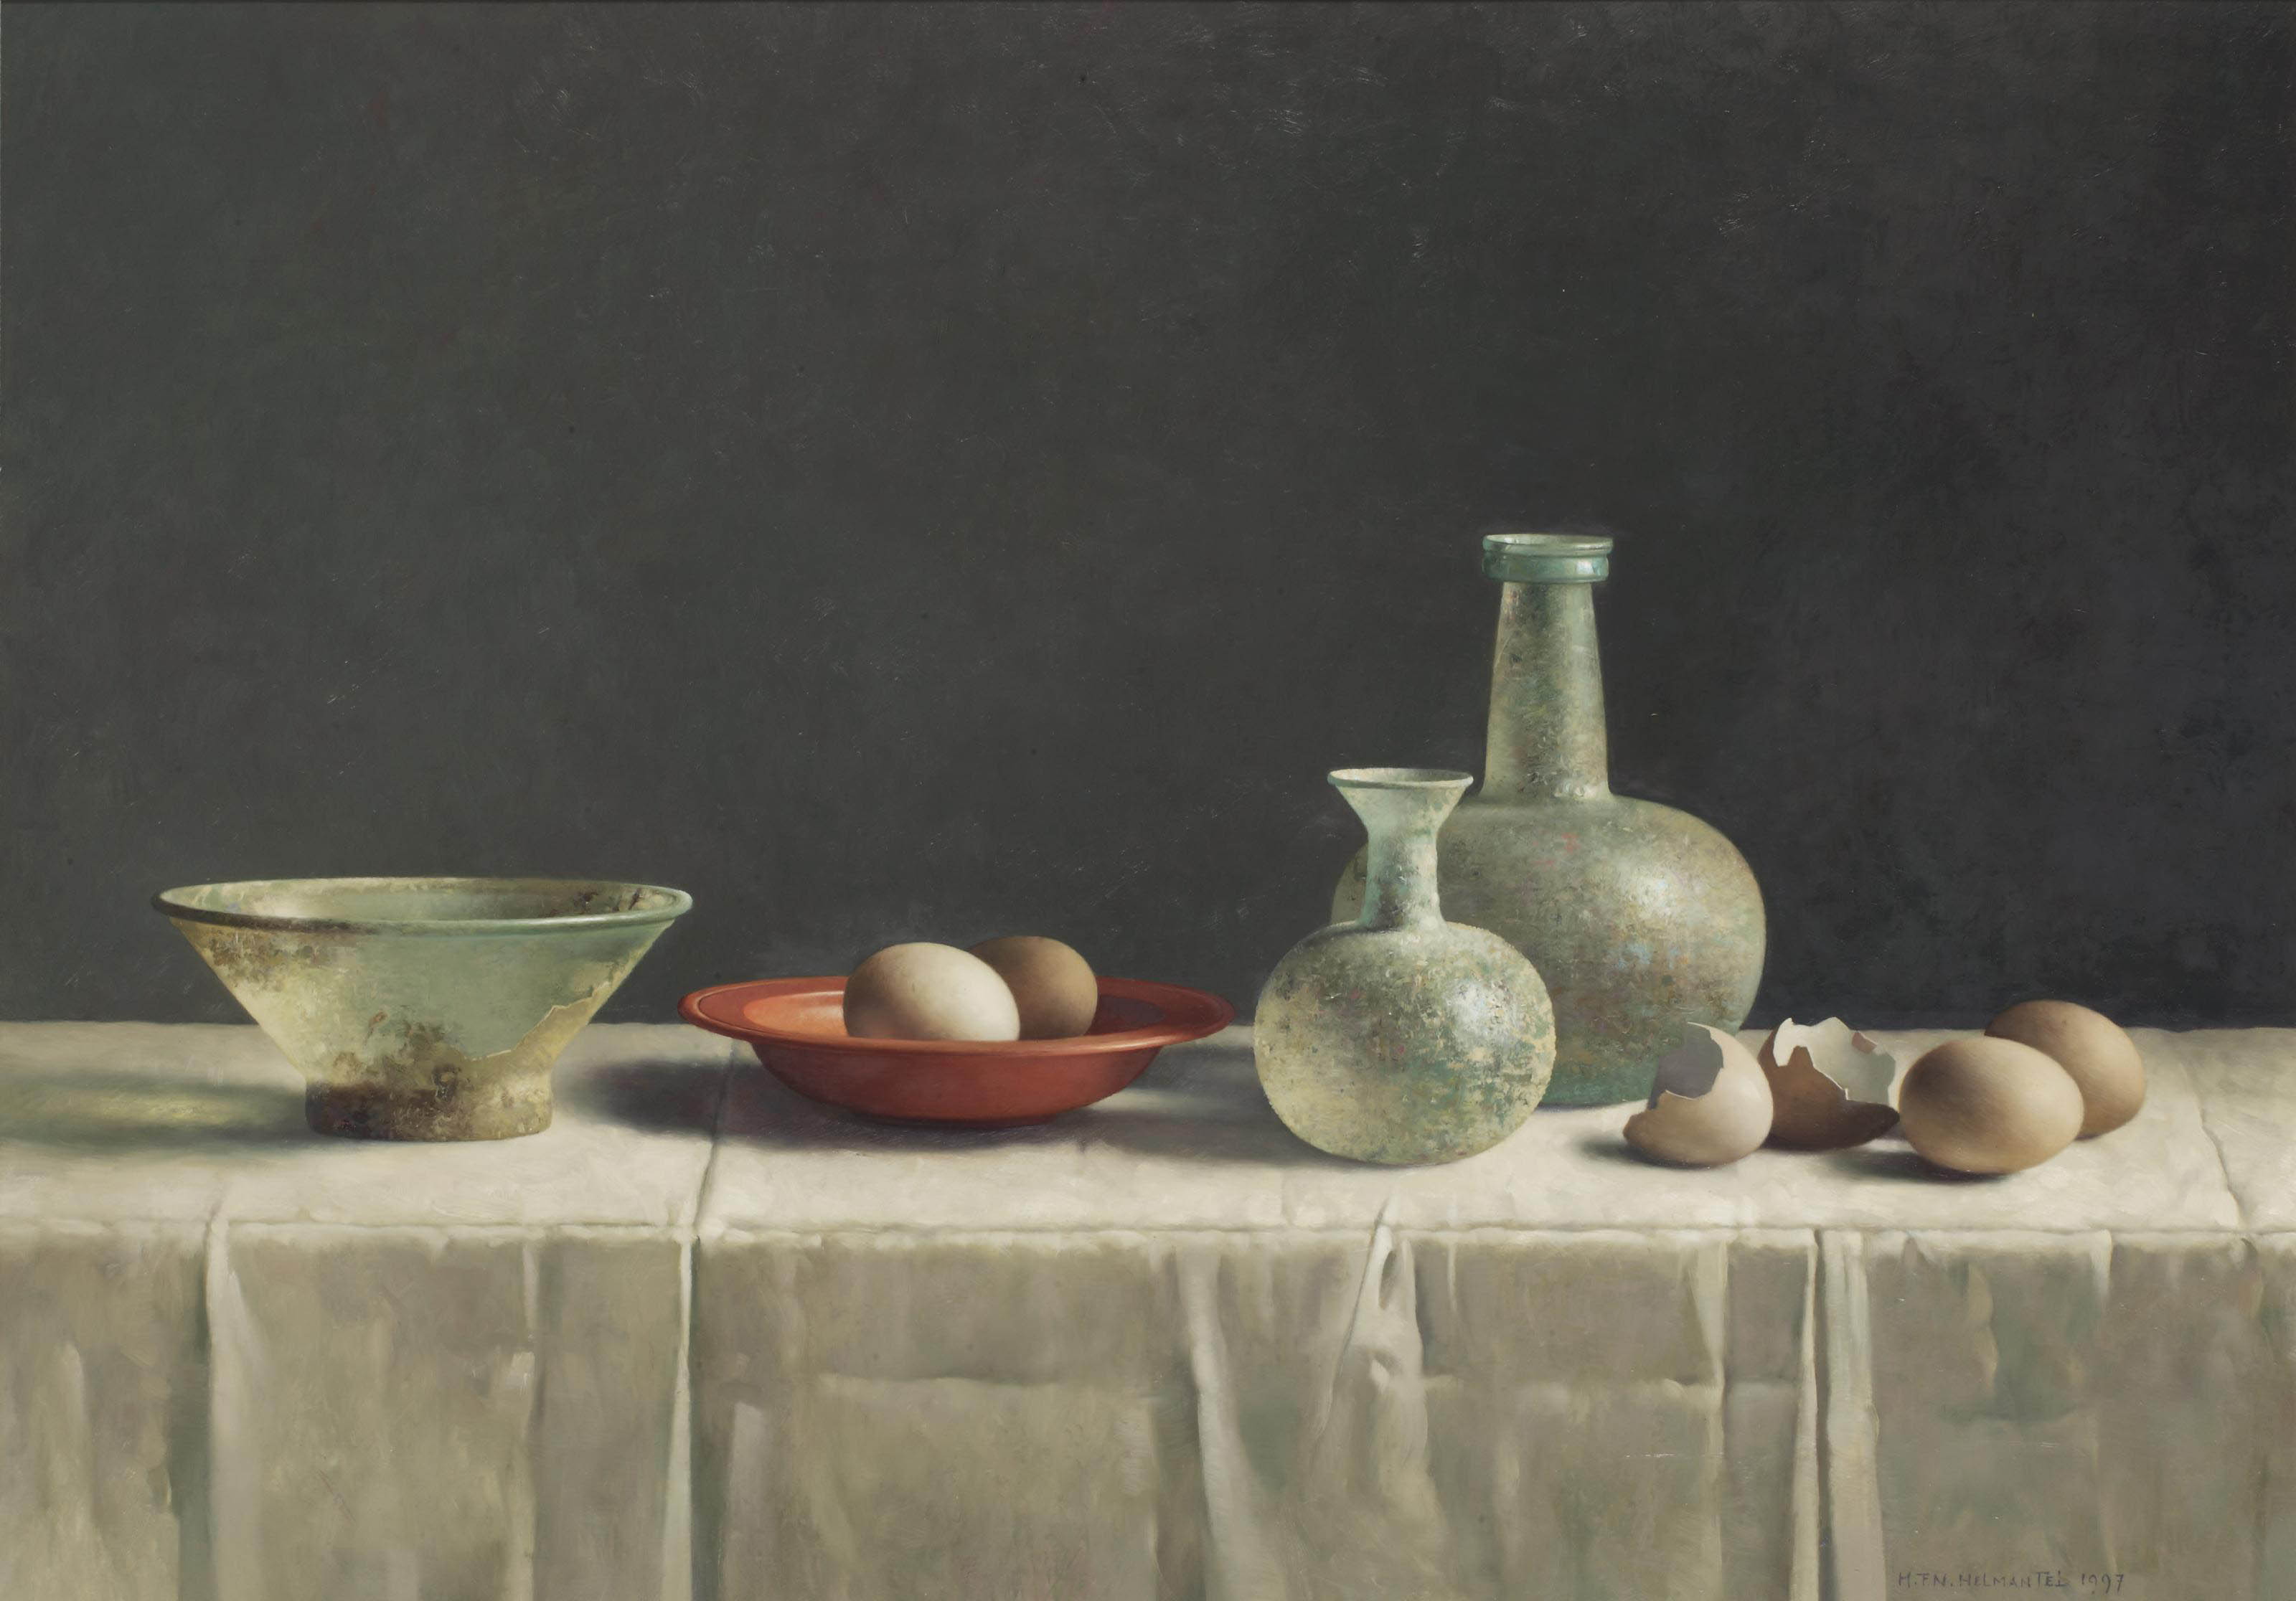 A still life with eggs and Roman glass